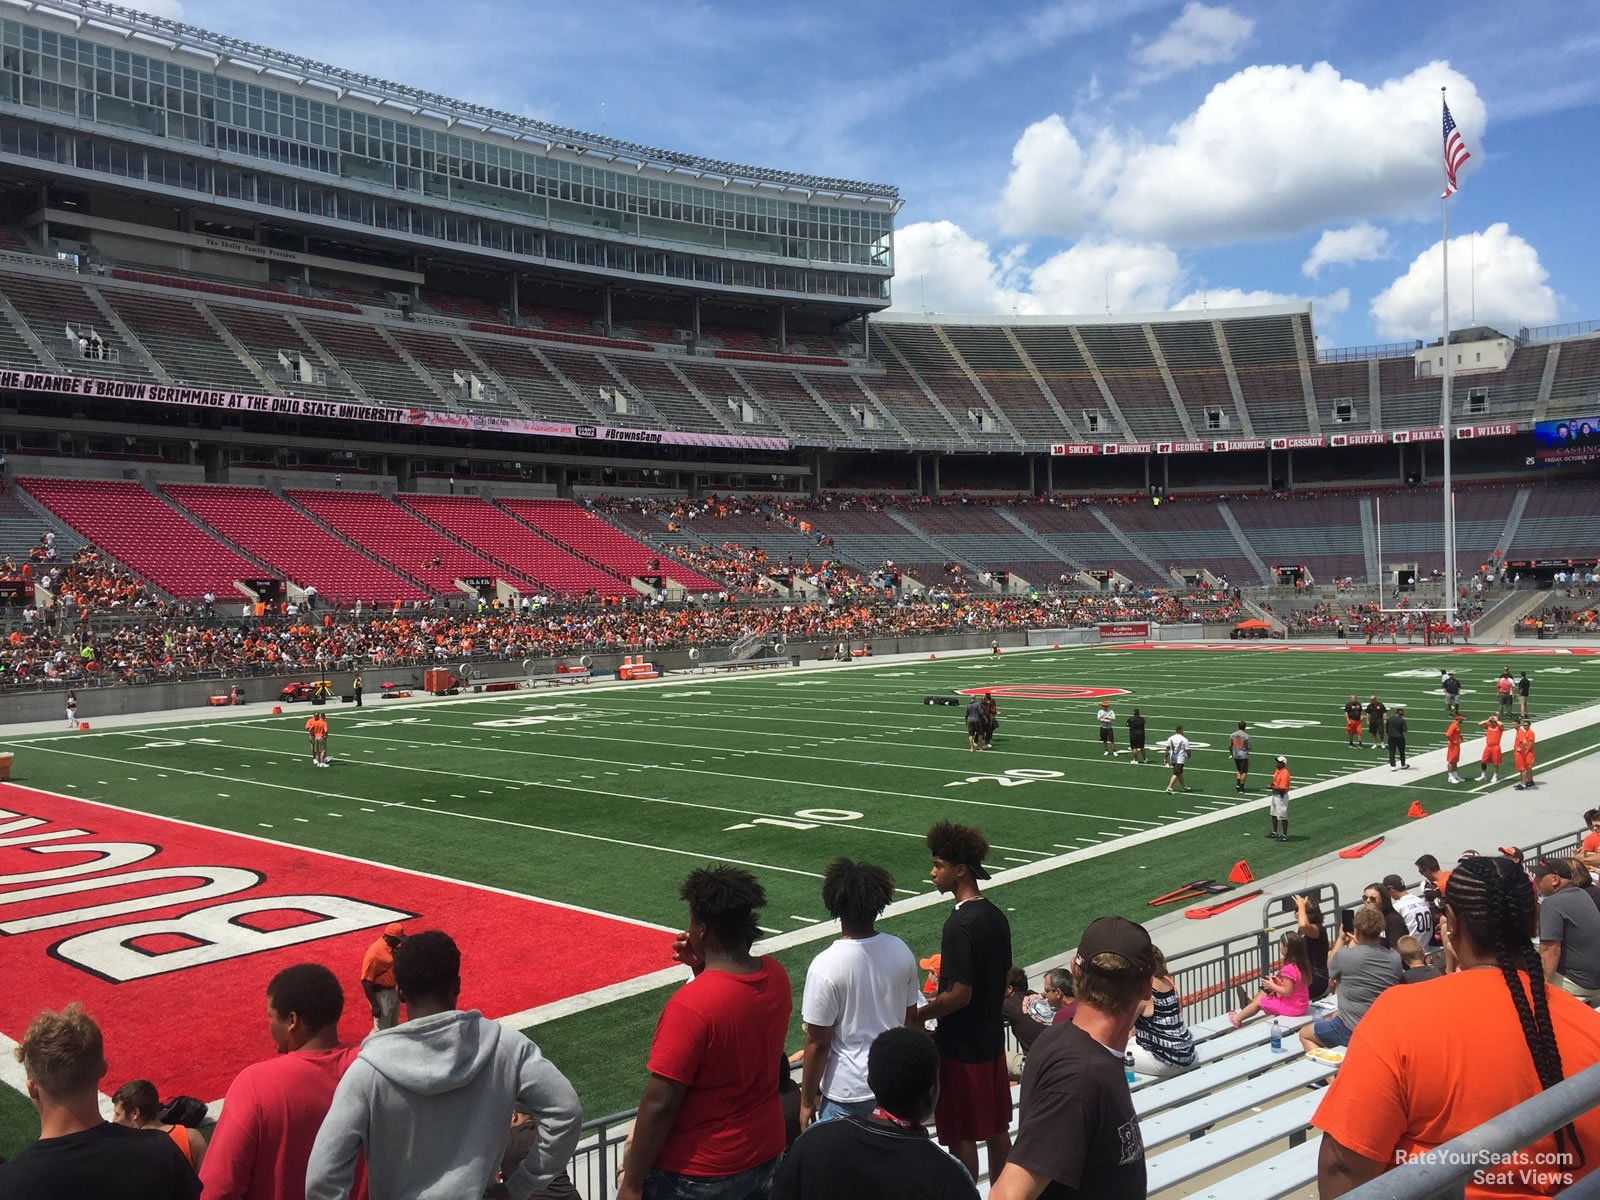 ohio stadium section 28aa rateyourseats com